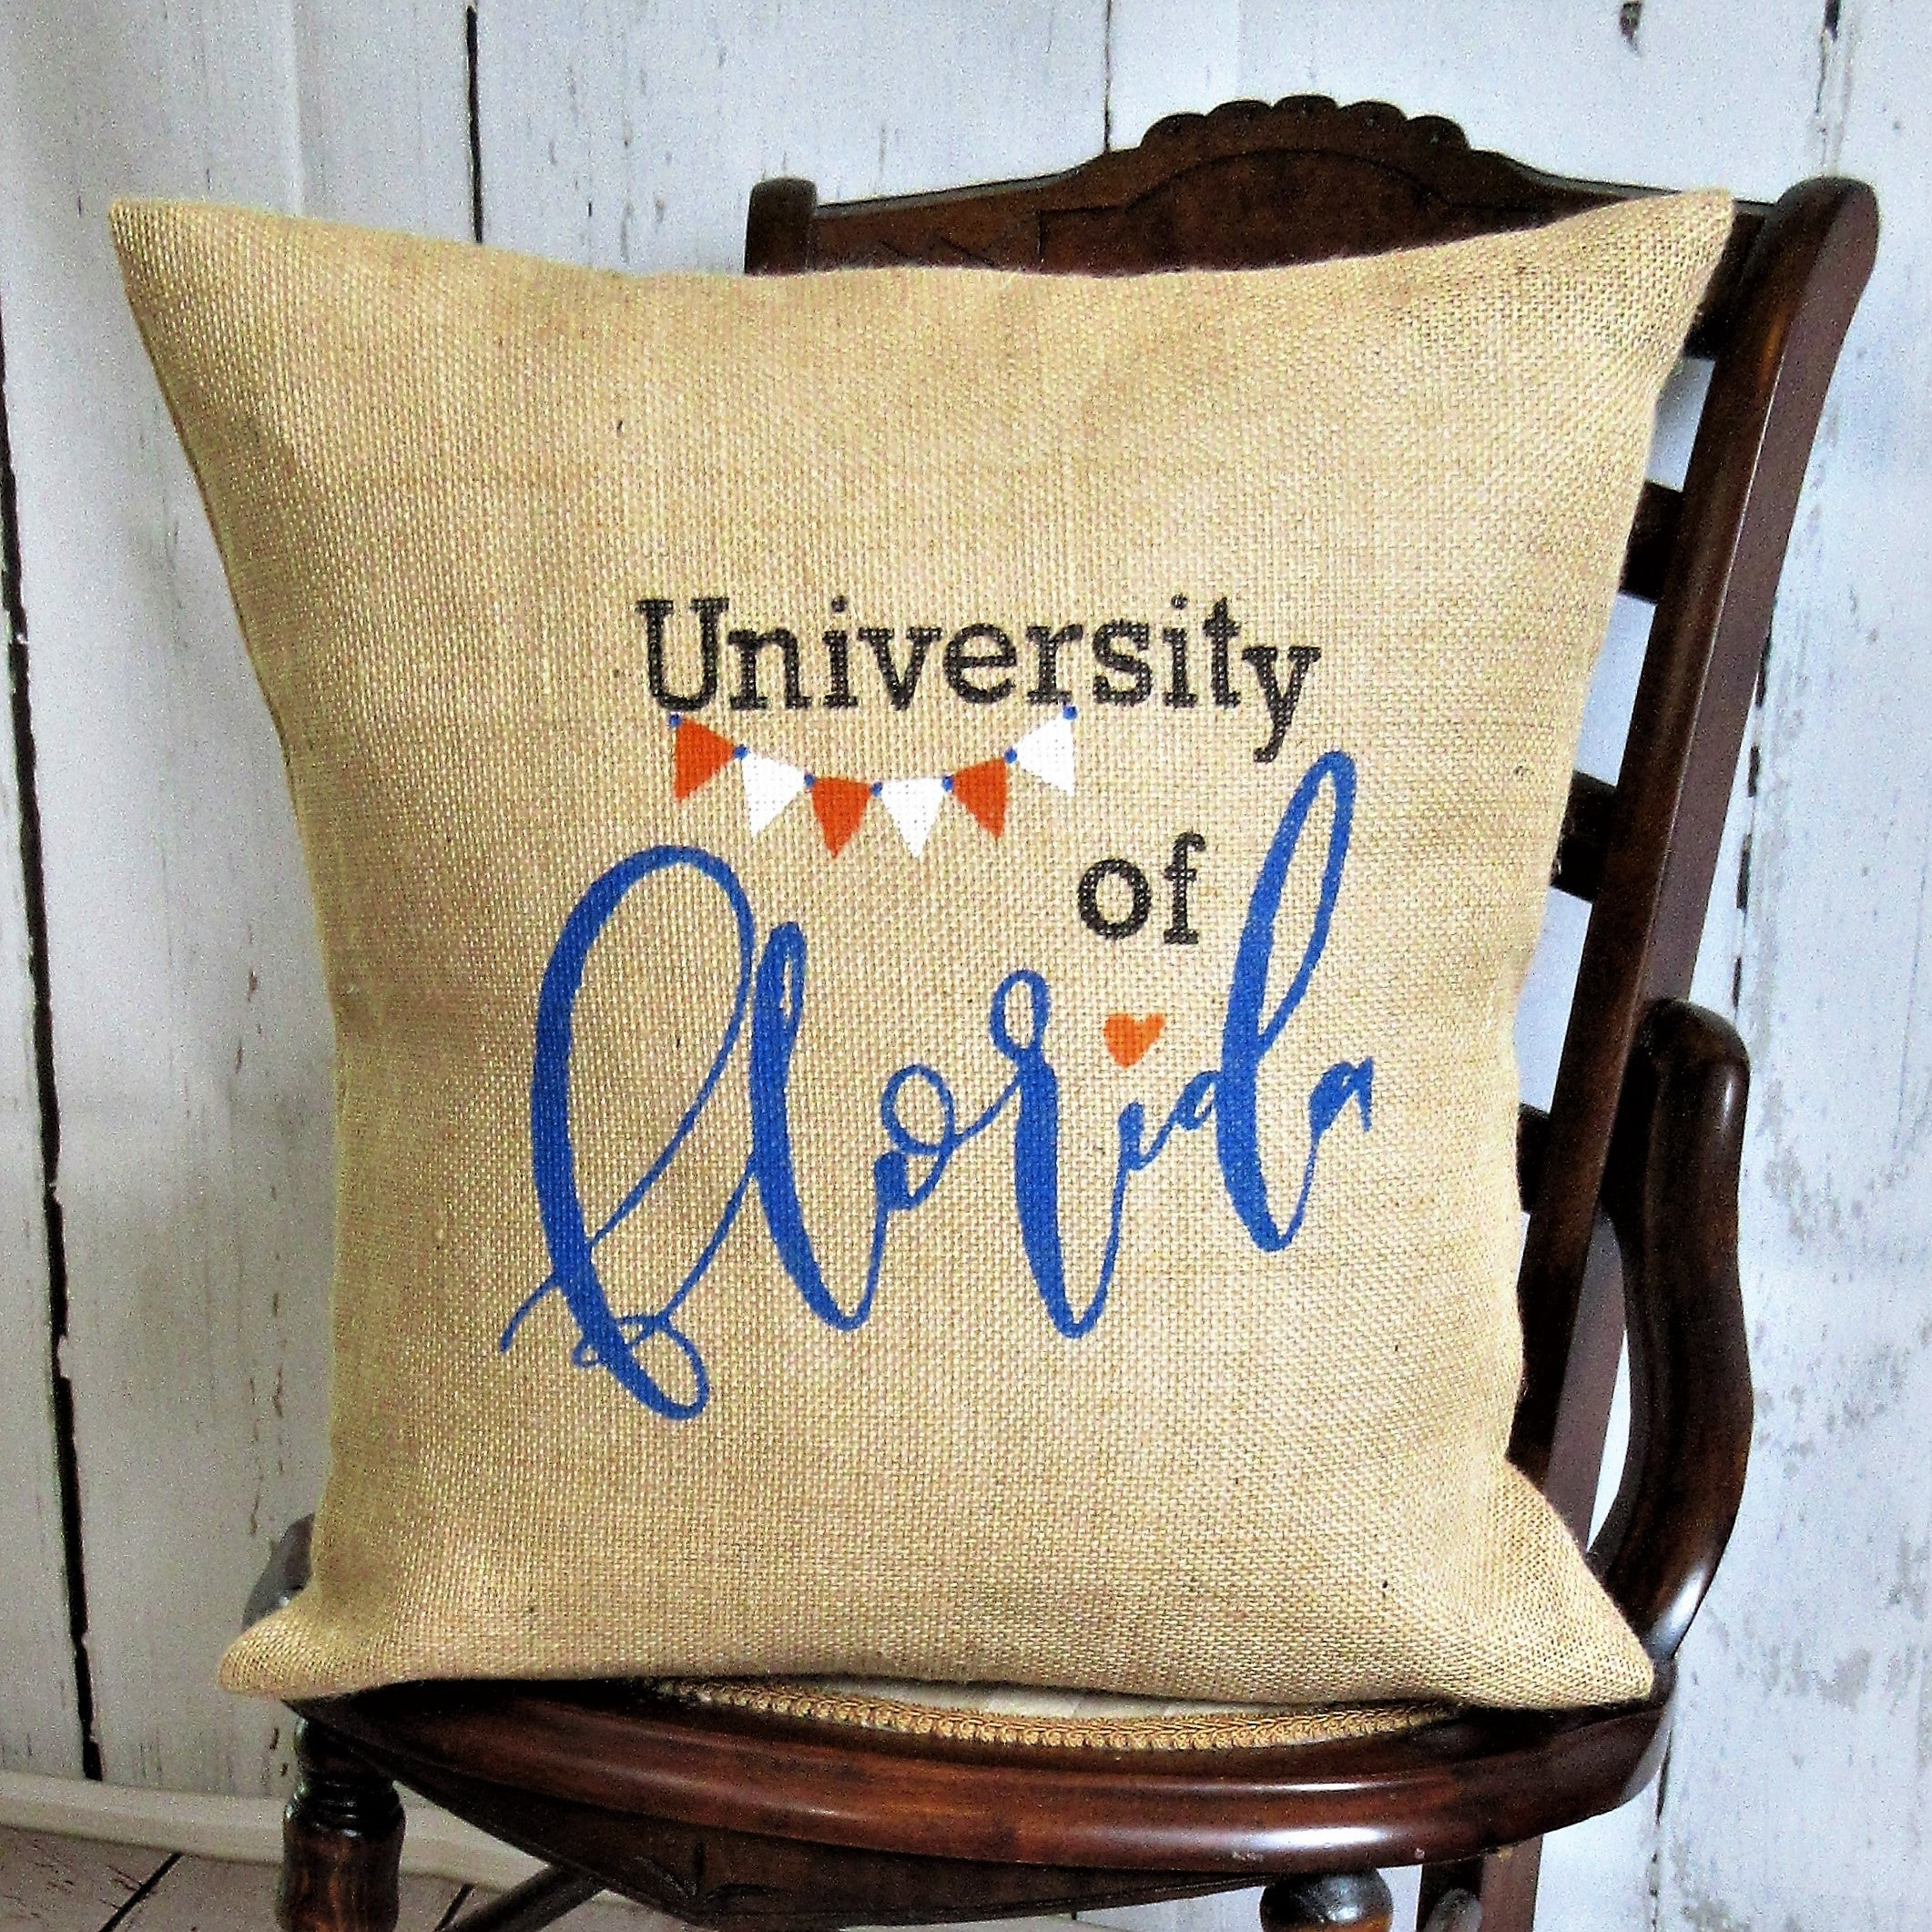 University of Florida burlap pillow